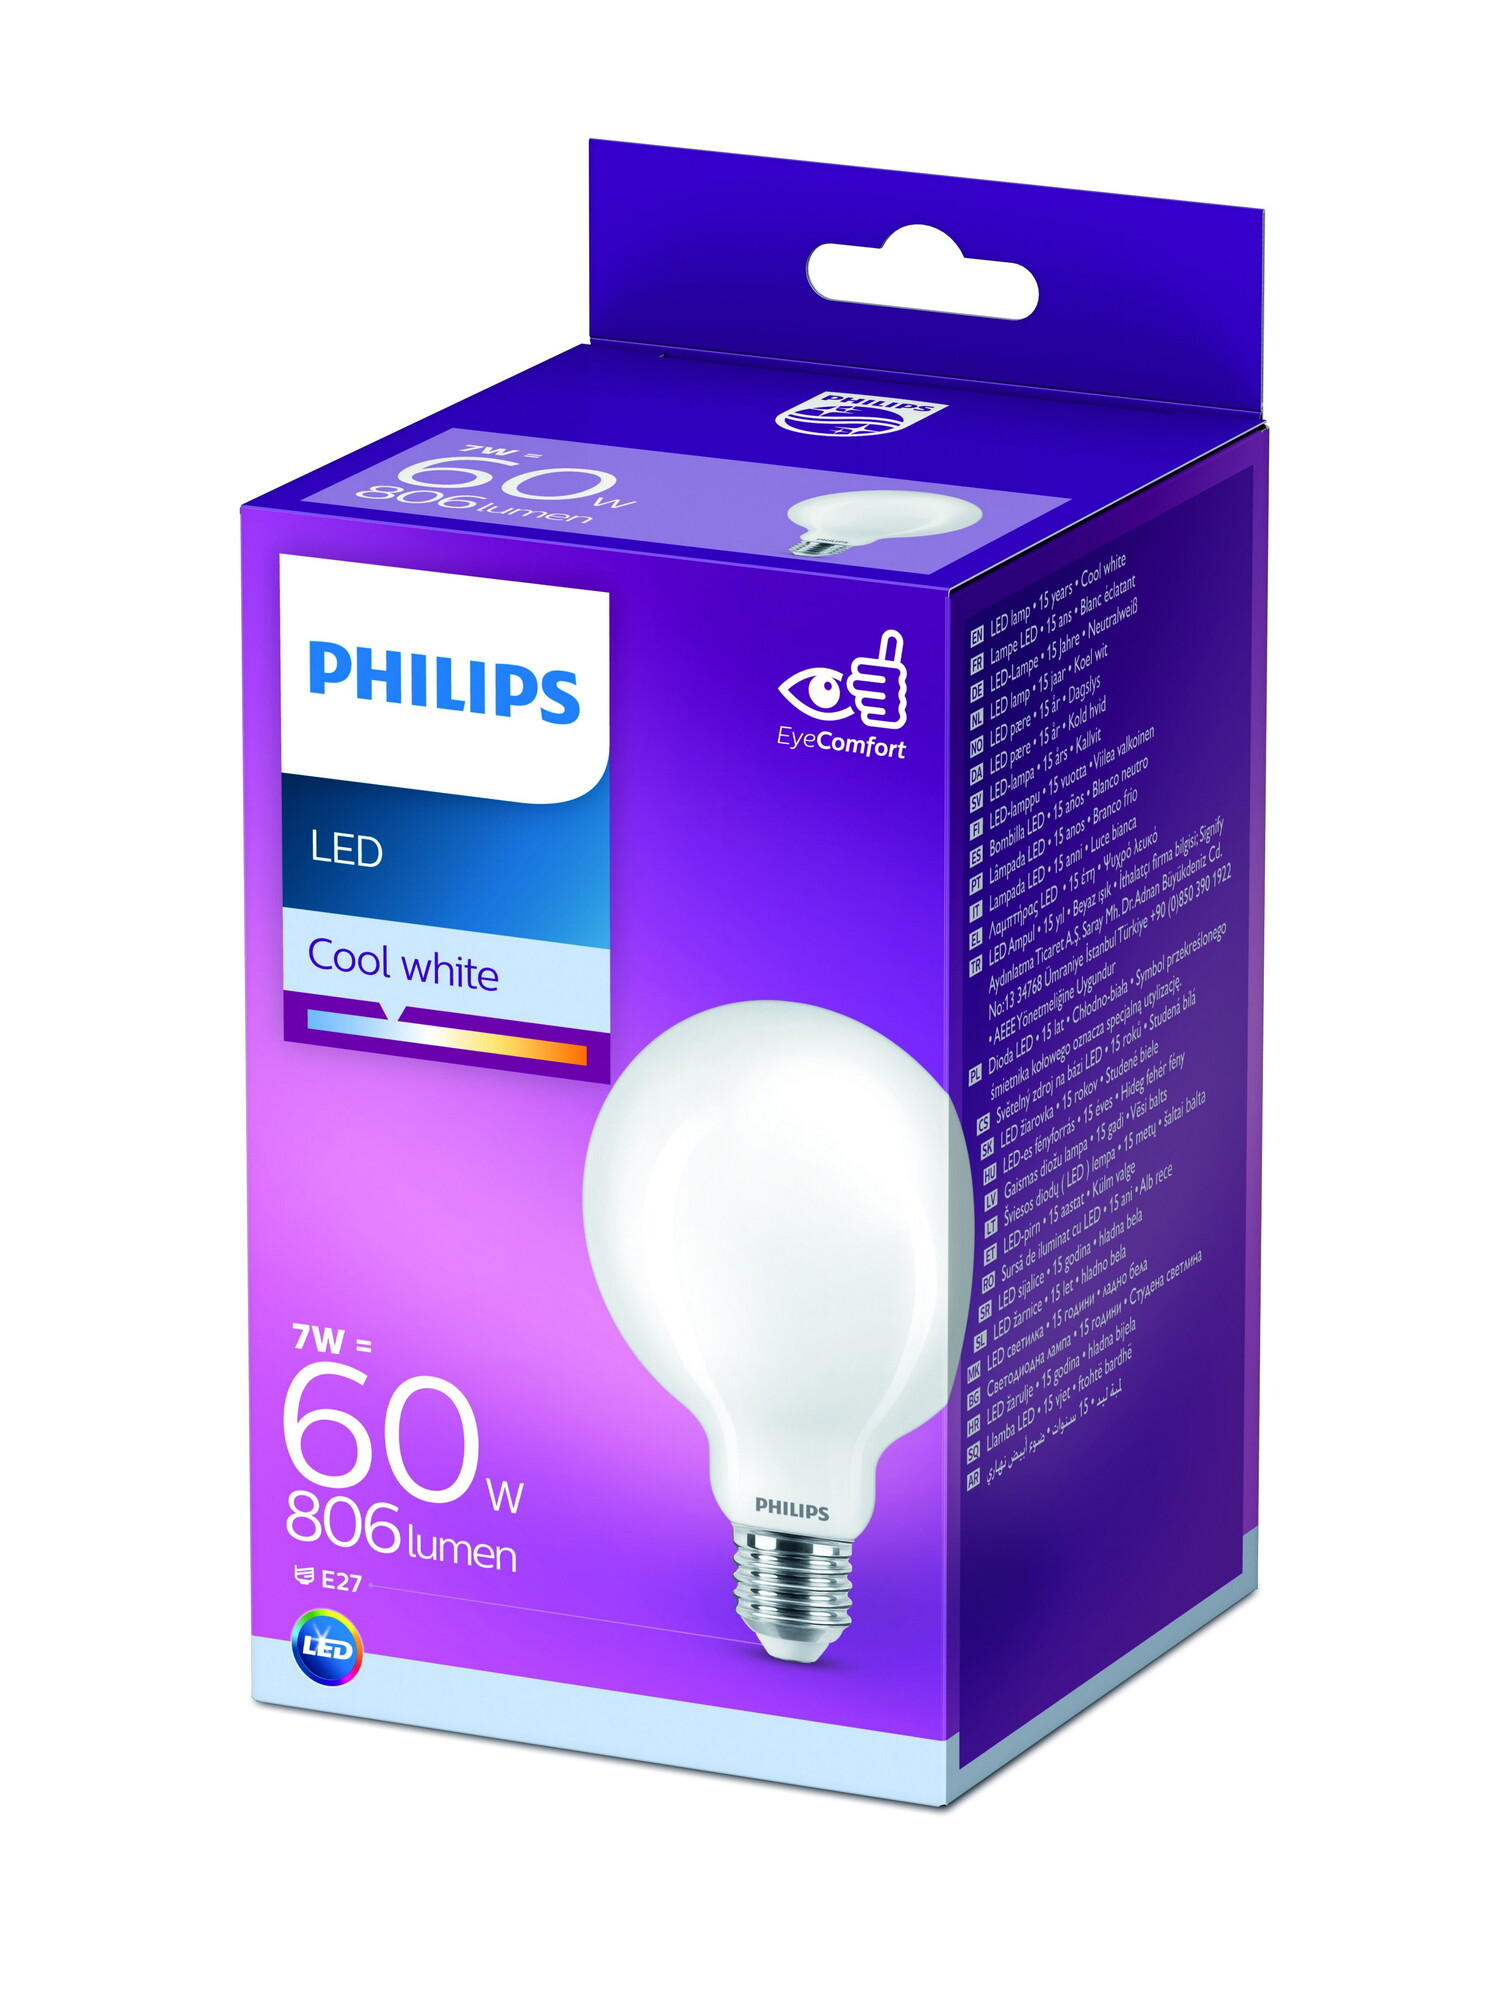 Philips LED E27 7W 806lm 4000K Globe Frosted